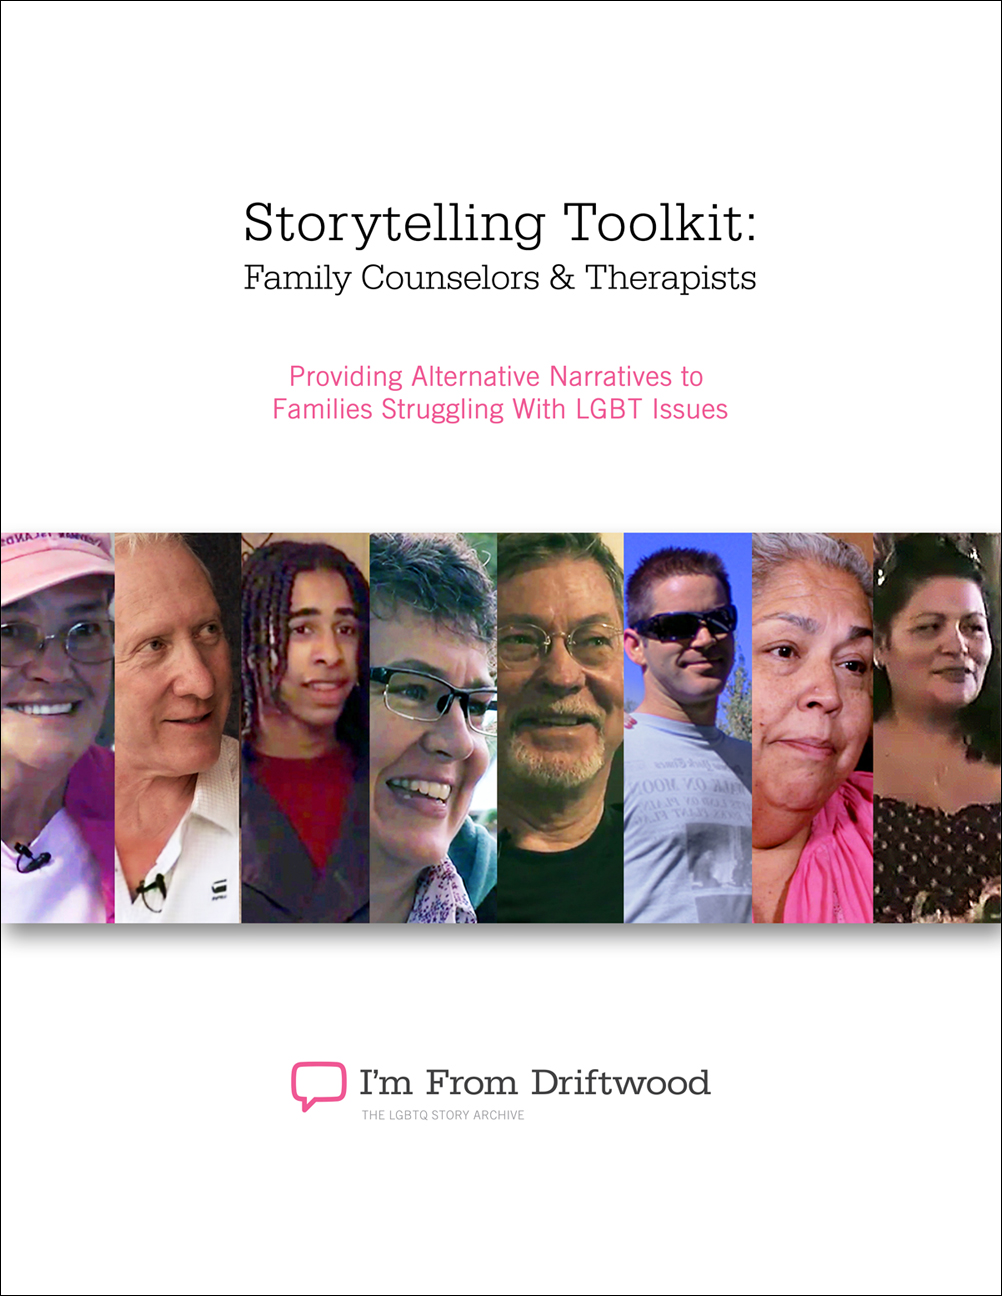 Storytelling Toolkit 082415 - PRINT - cover